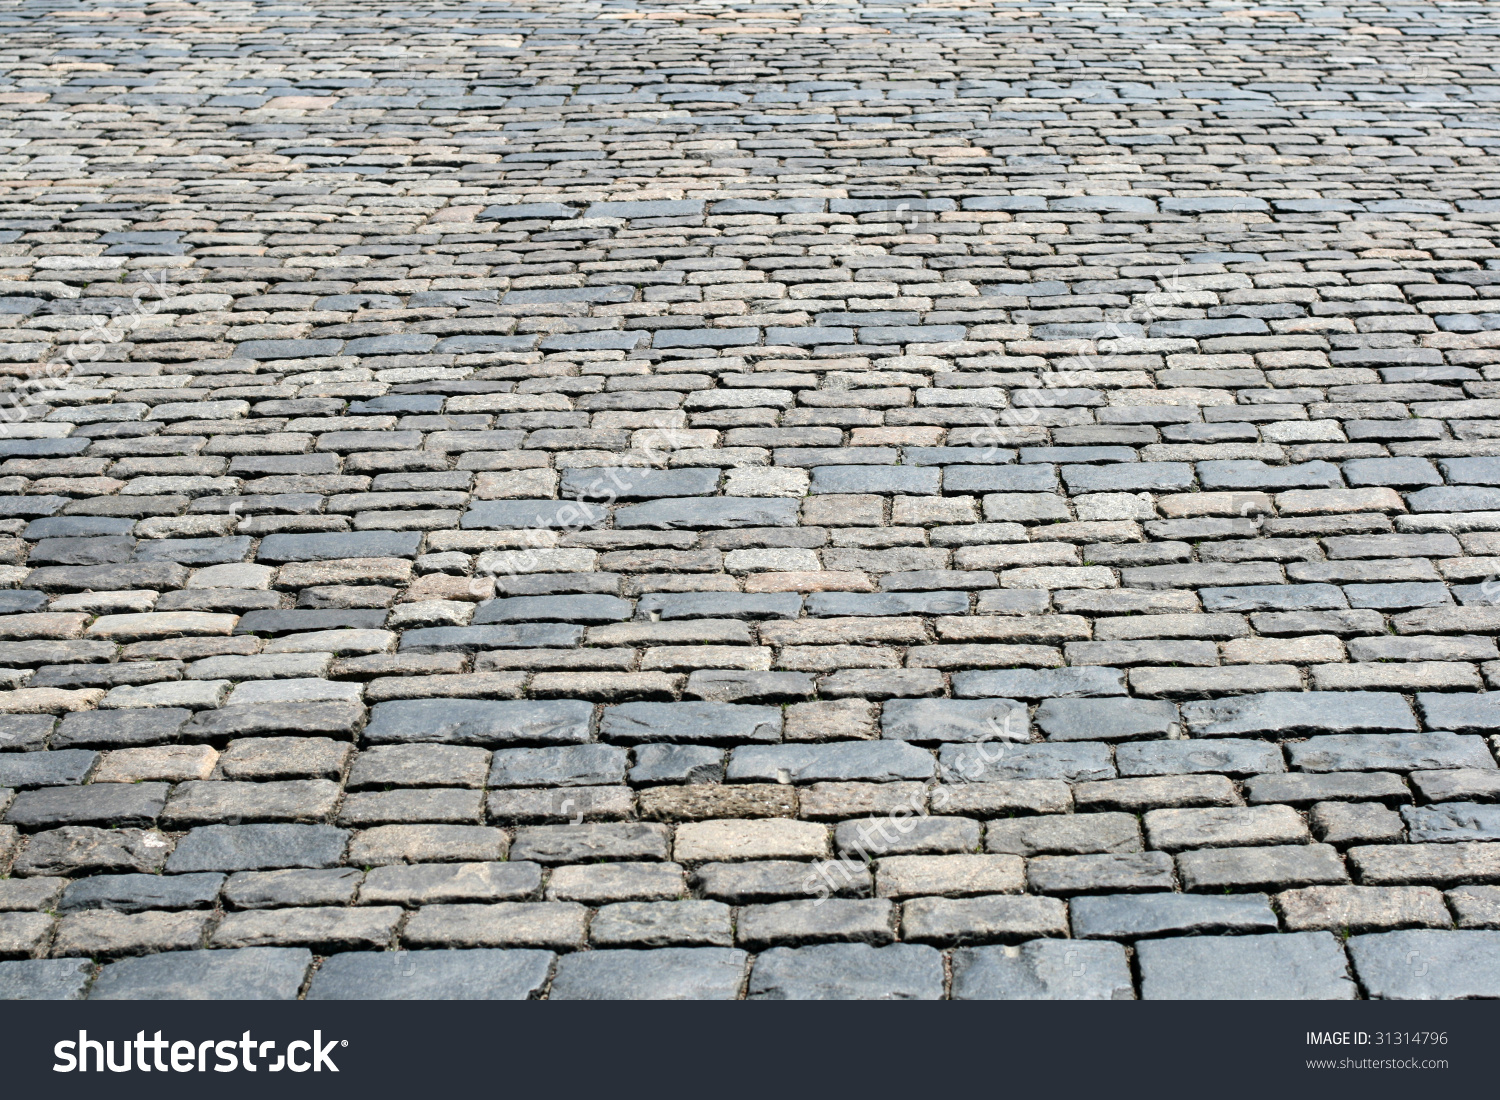 Cobblestone Clip Art : Red square paving clipart clipground